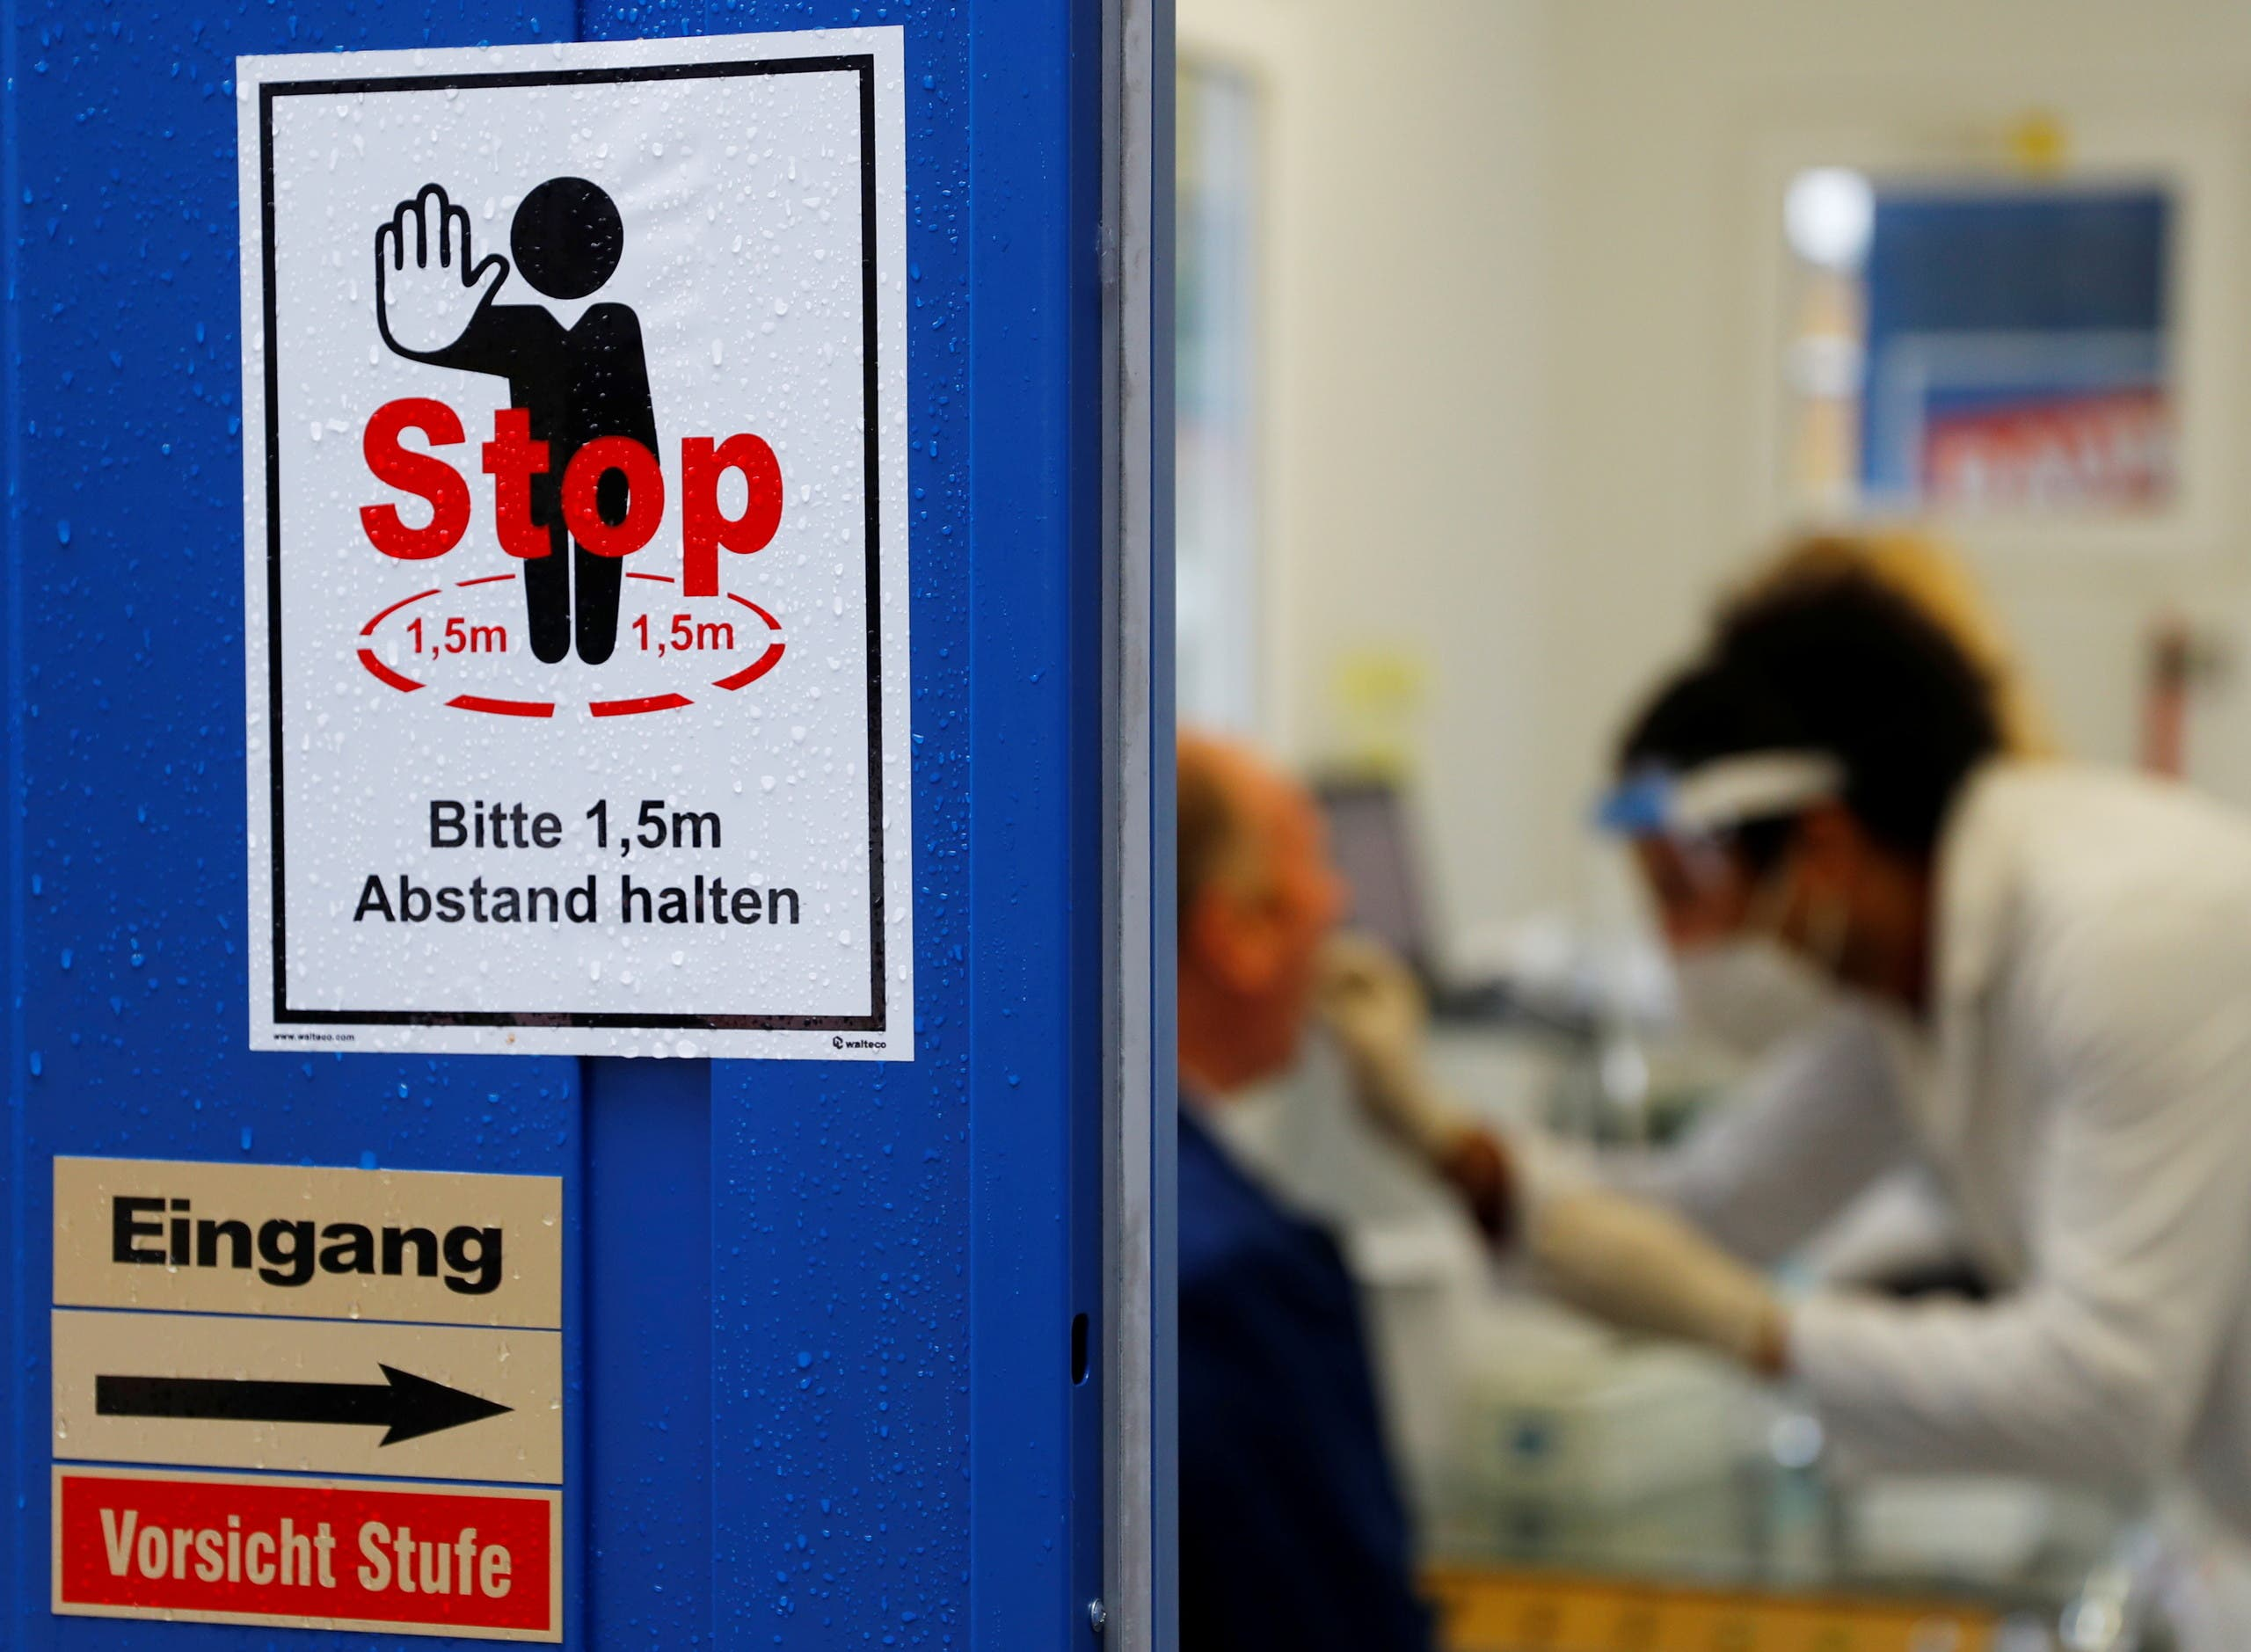 A health care worker performs a fast PCR test at a test center amid the coronavirus outbreak, in Vienna, Austria October 30, 2020. (Reuters/Leonhard Foeger)